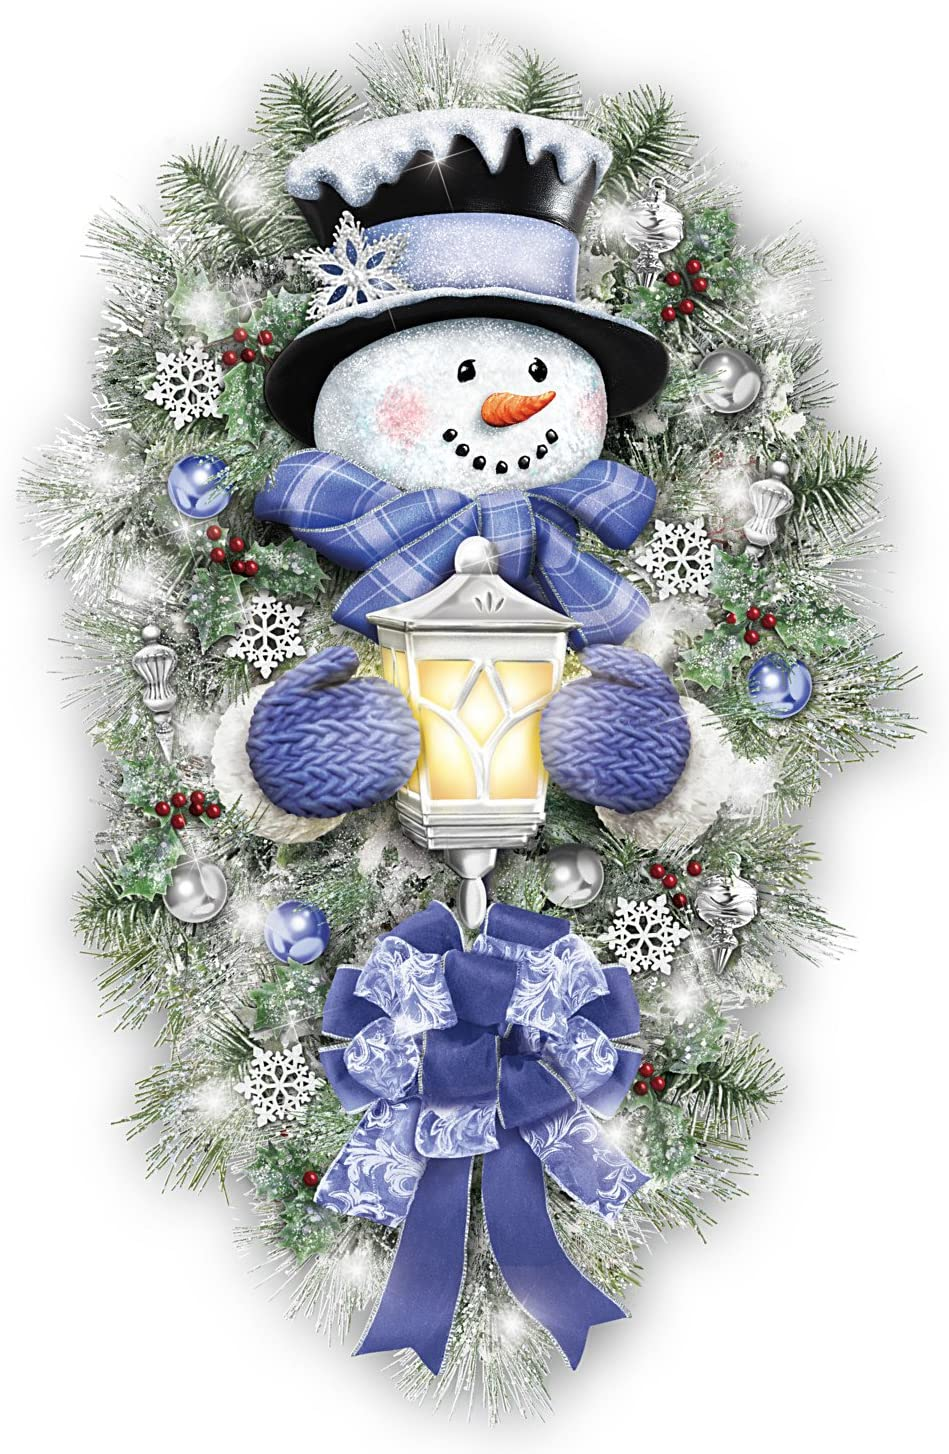 The Bradford Exchange Thomas Kinkade A Warm Winter Welcome Holiday Snowman Wreath Lights Up 2 Tall Home Kitchen